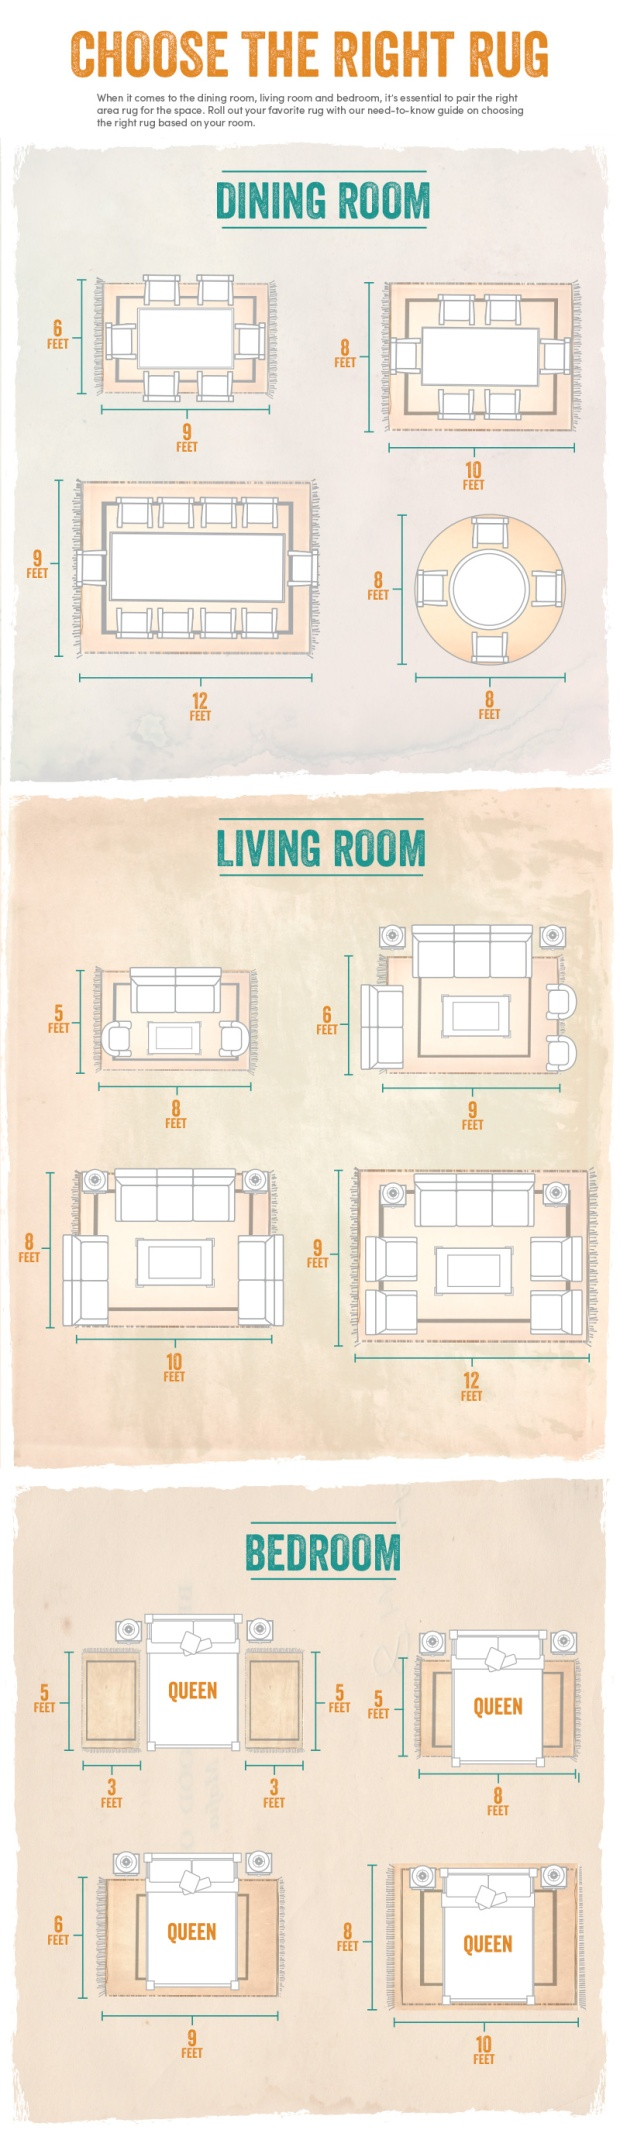 choose_the_right_rug_infographic_blog